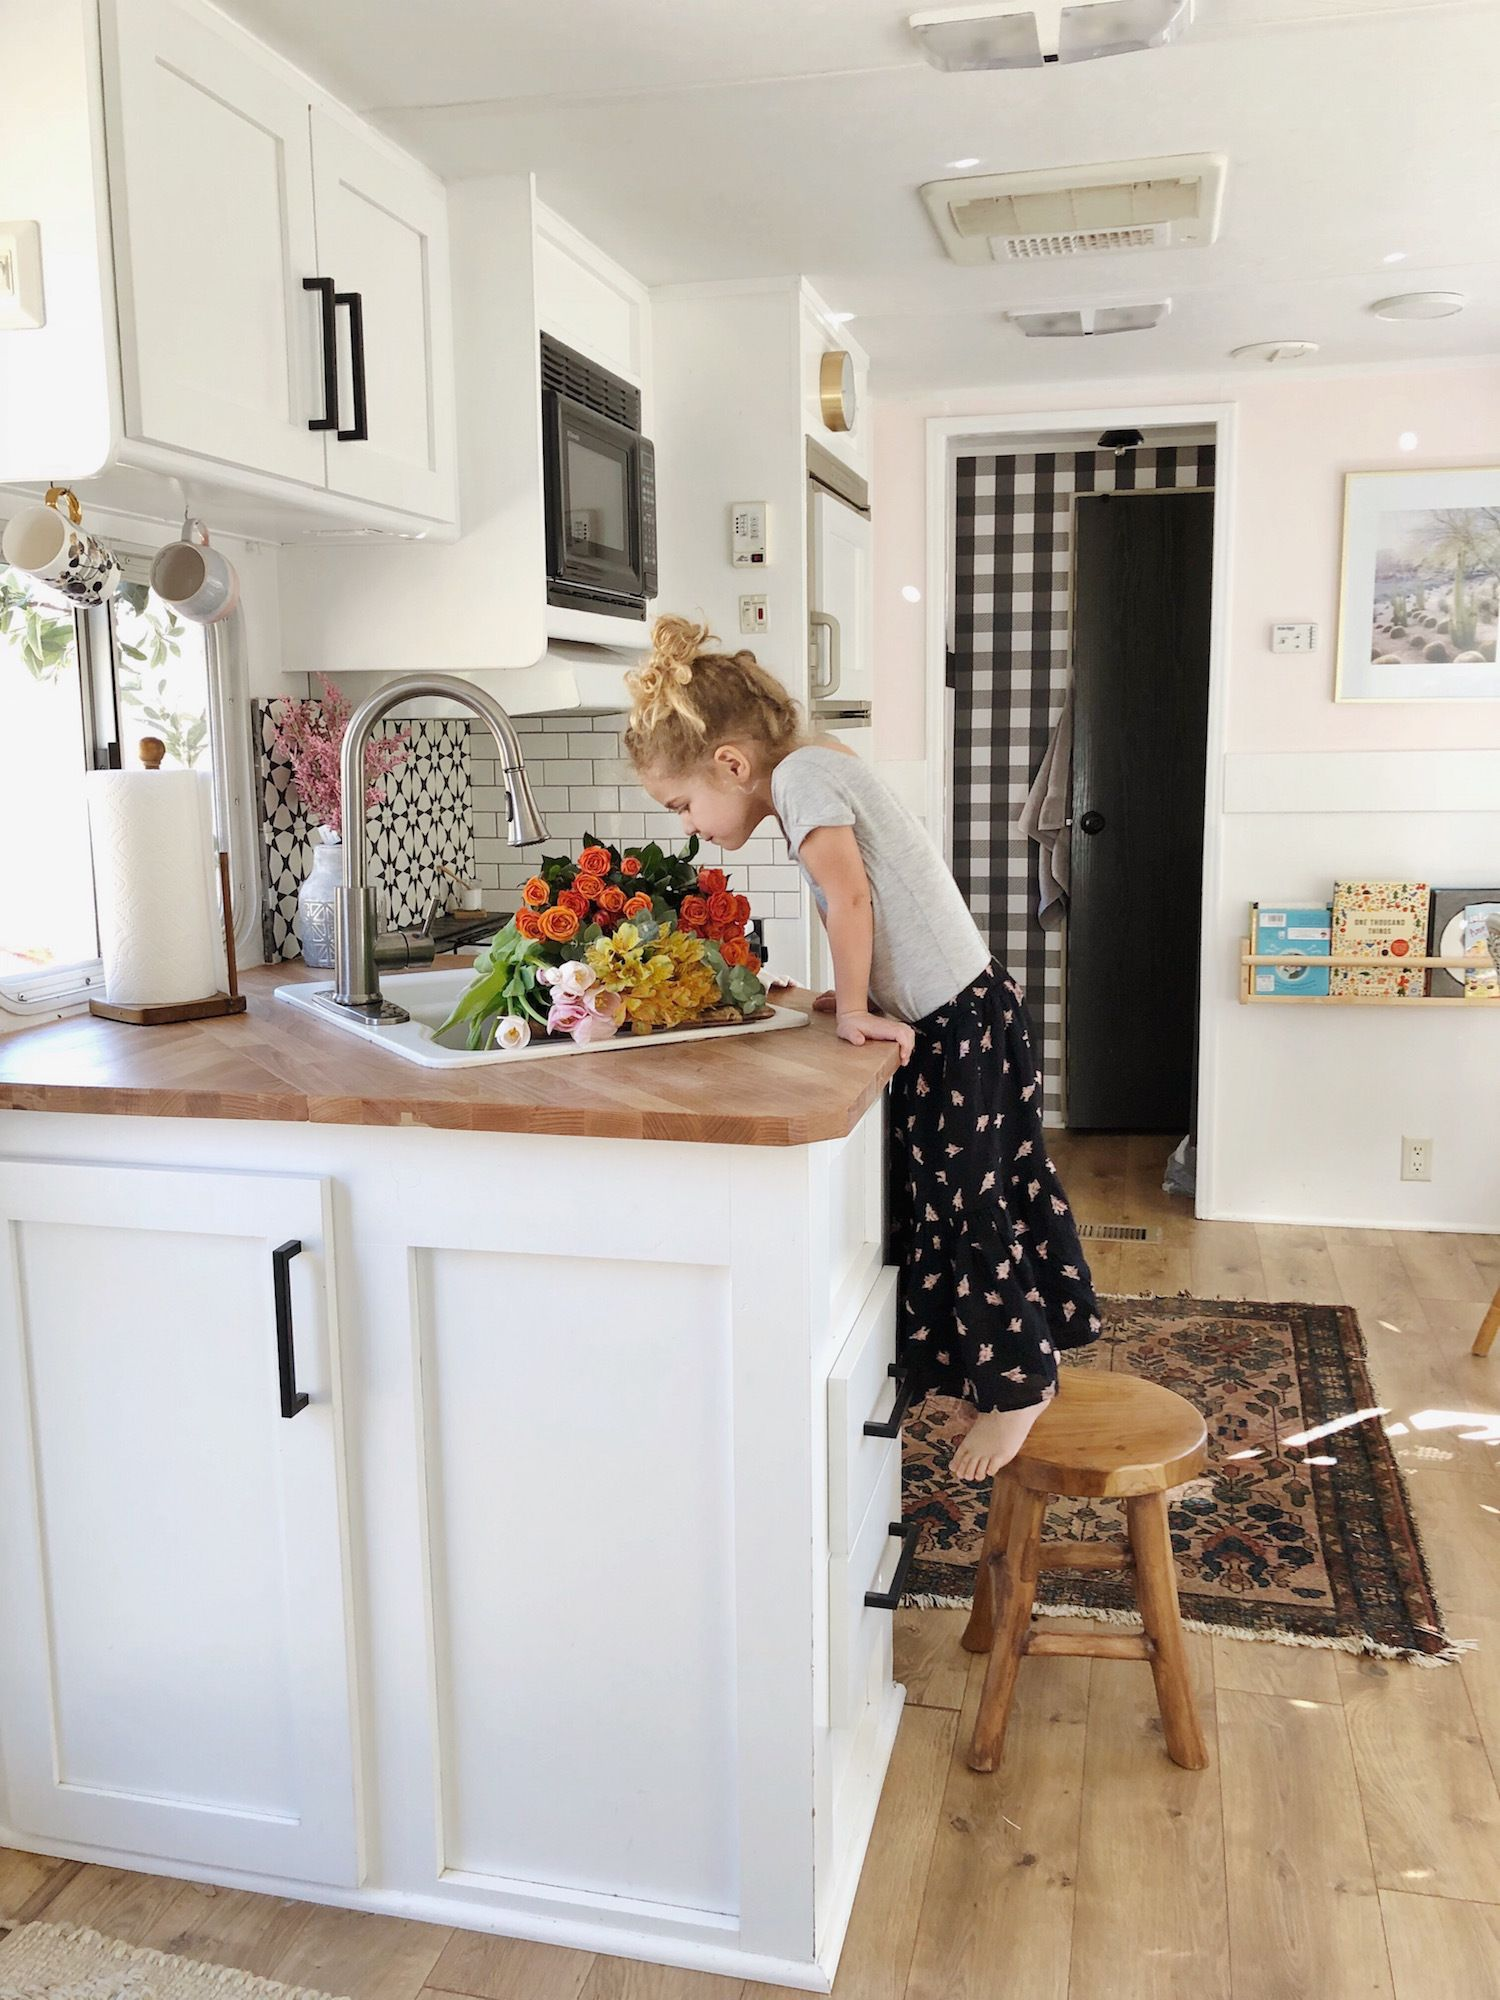 The Countertop Is A Repurposed IKEA Desktop Cut To Size. #rv #camper #